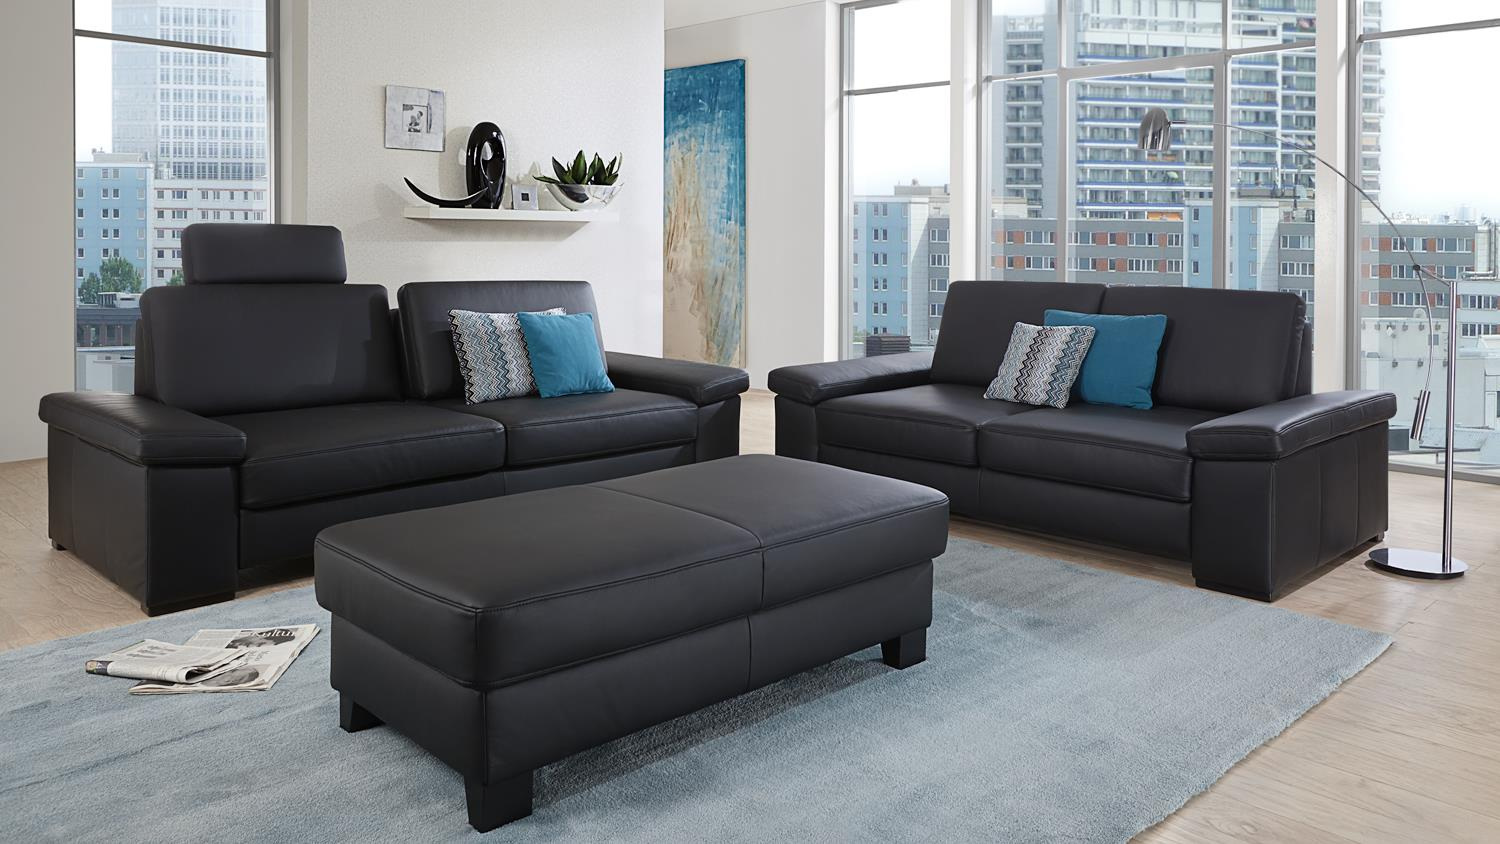 sofa puzzle 2 sitzer in echtleder schwarz mit federkern breite 208 cm. Black Bedroom Furniture Sets. Home Design Ideas